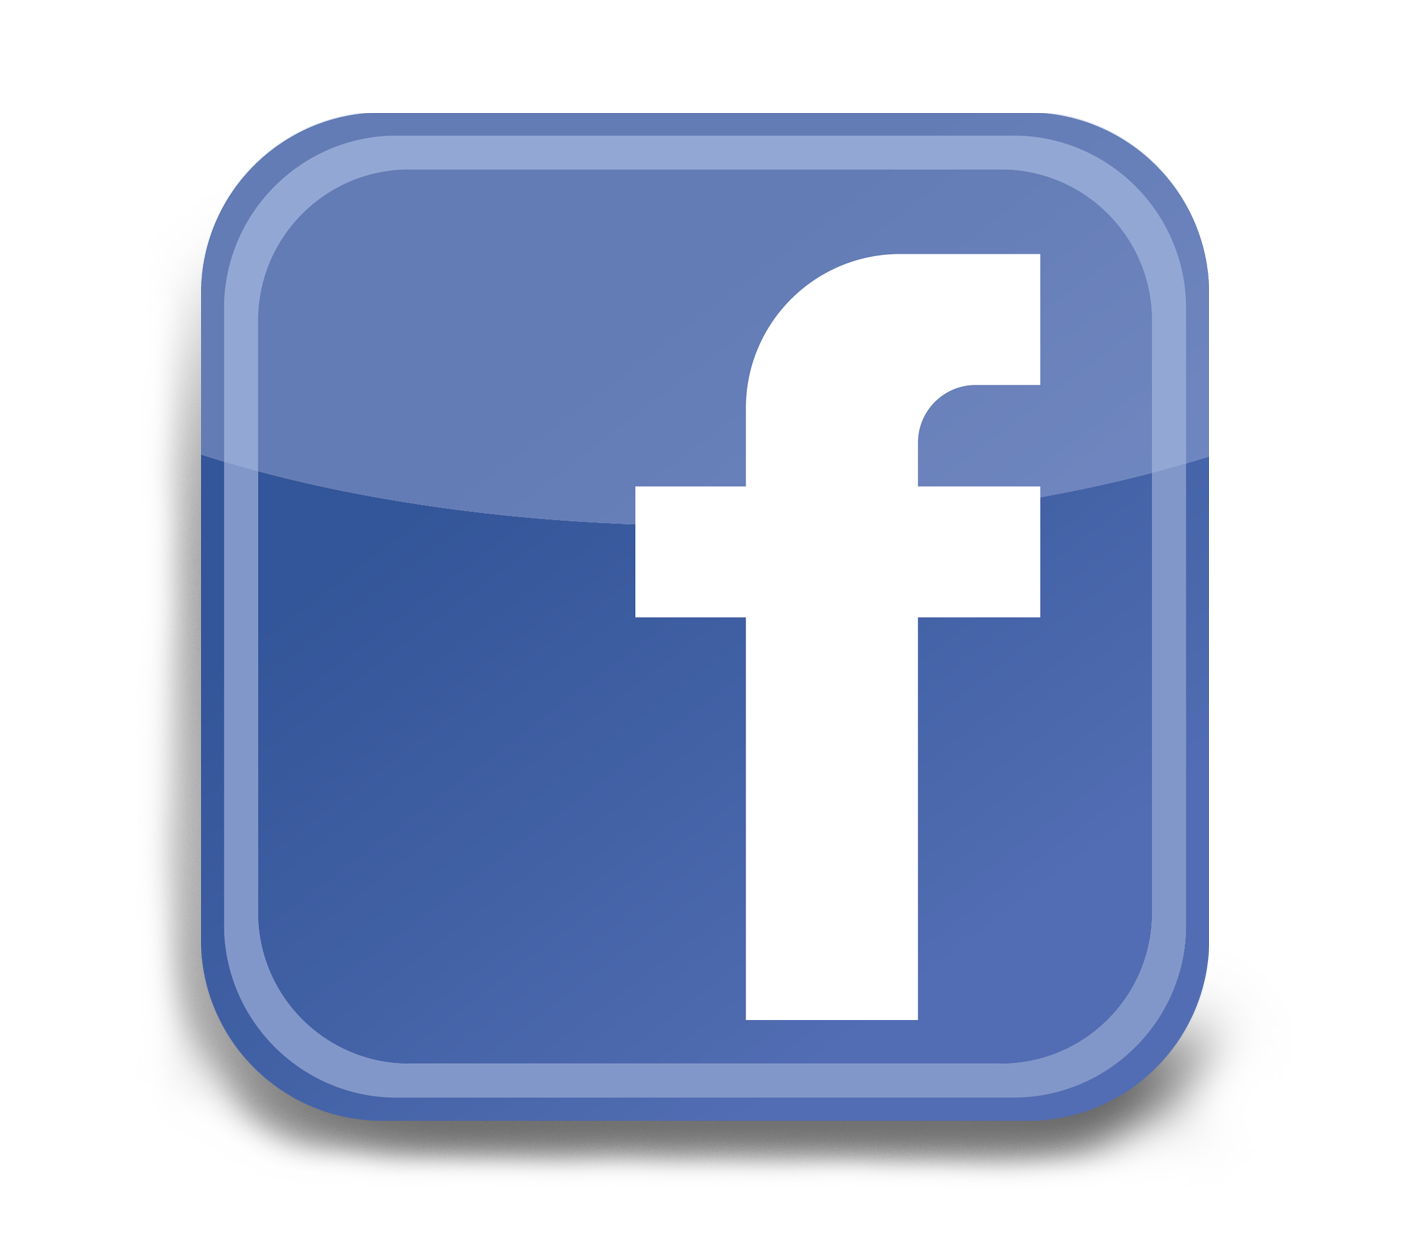 Image result for facebook logo transparent